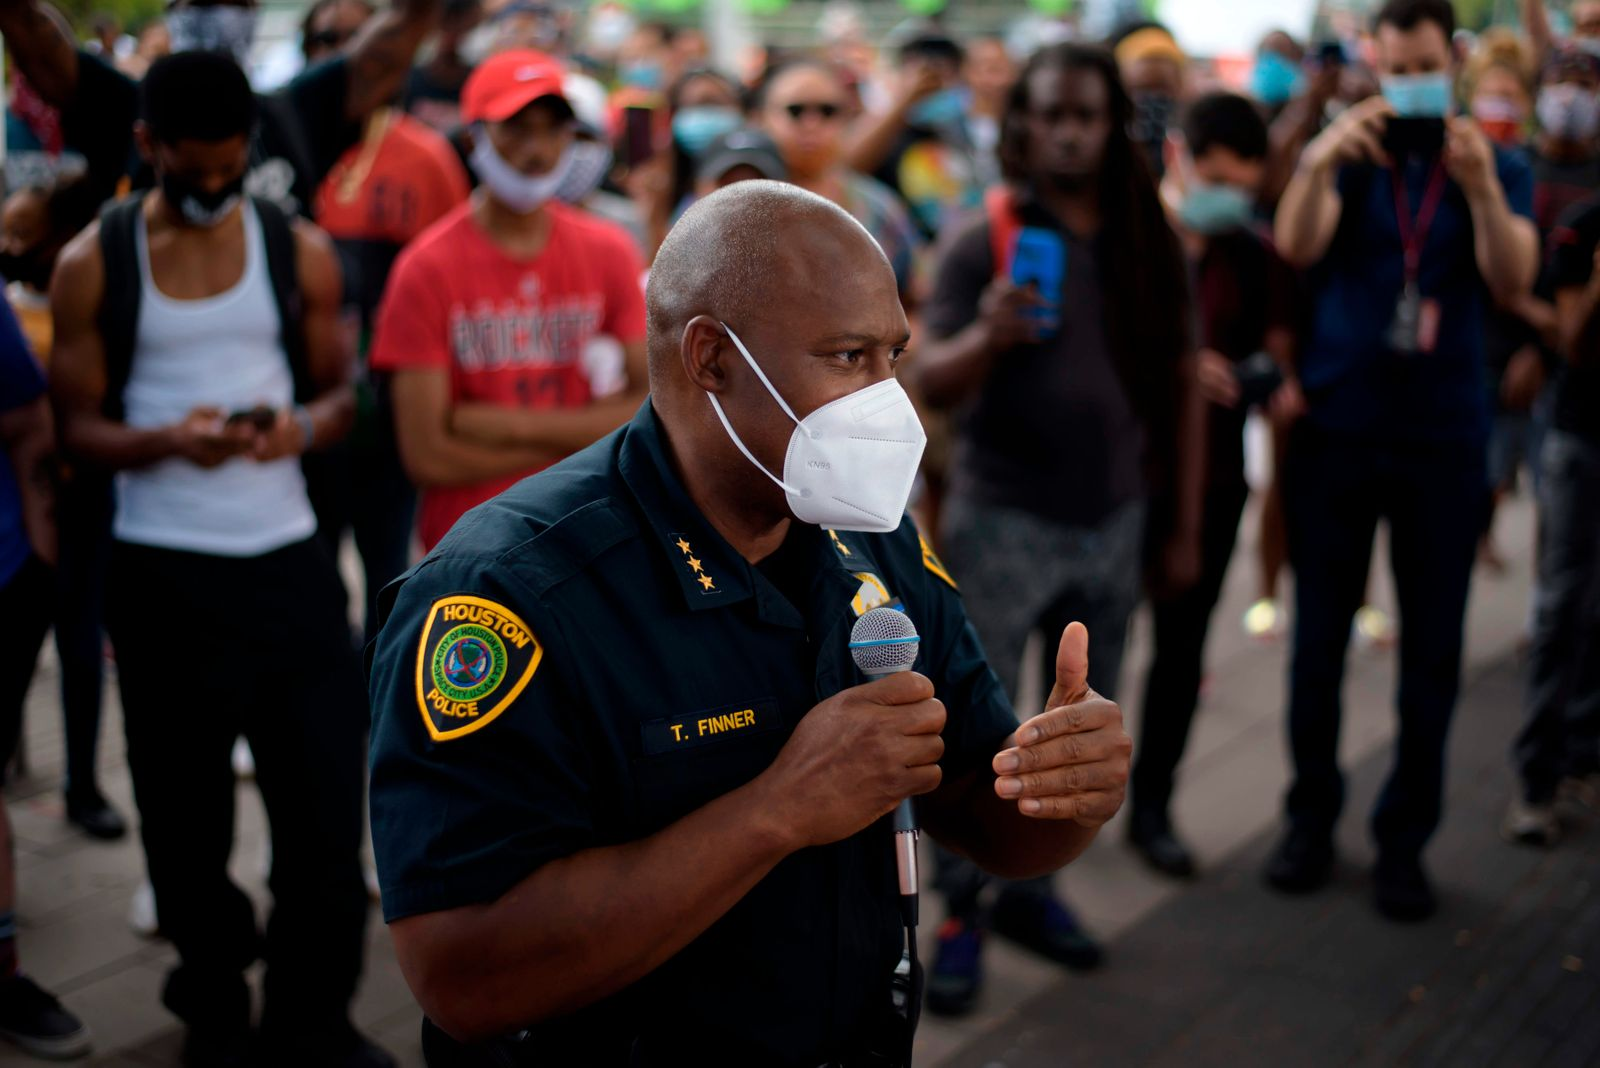 Protest against police killing of George Floyd